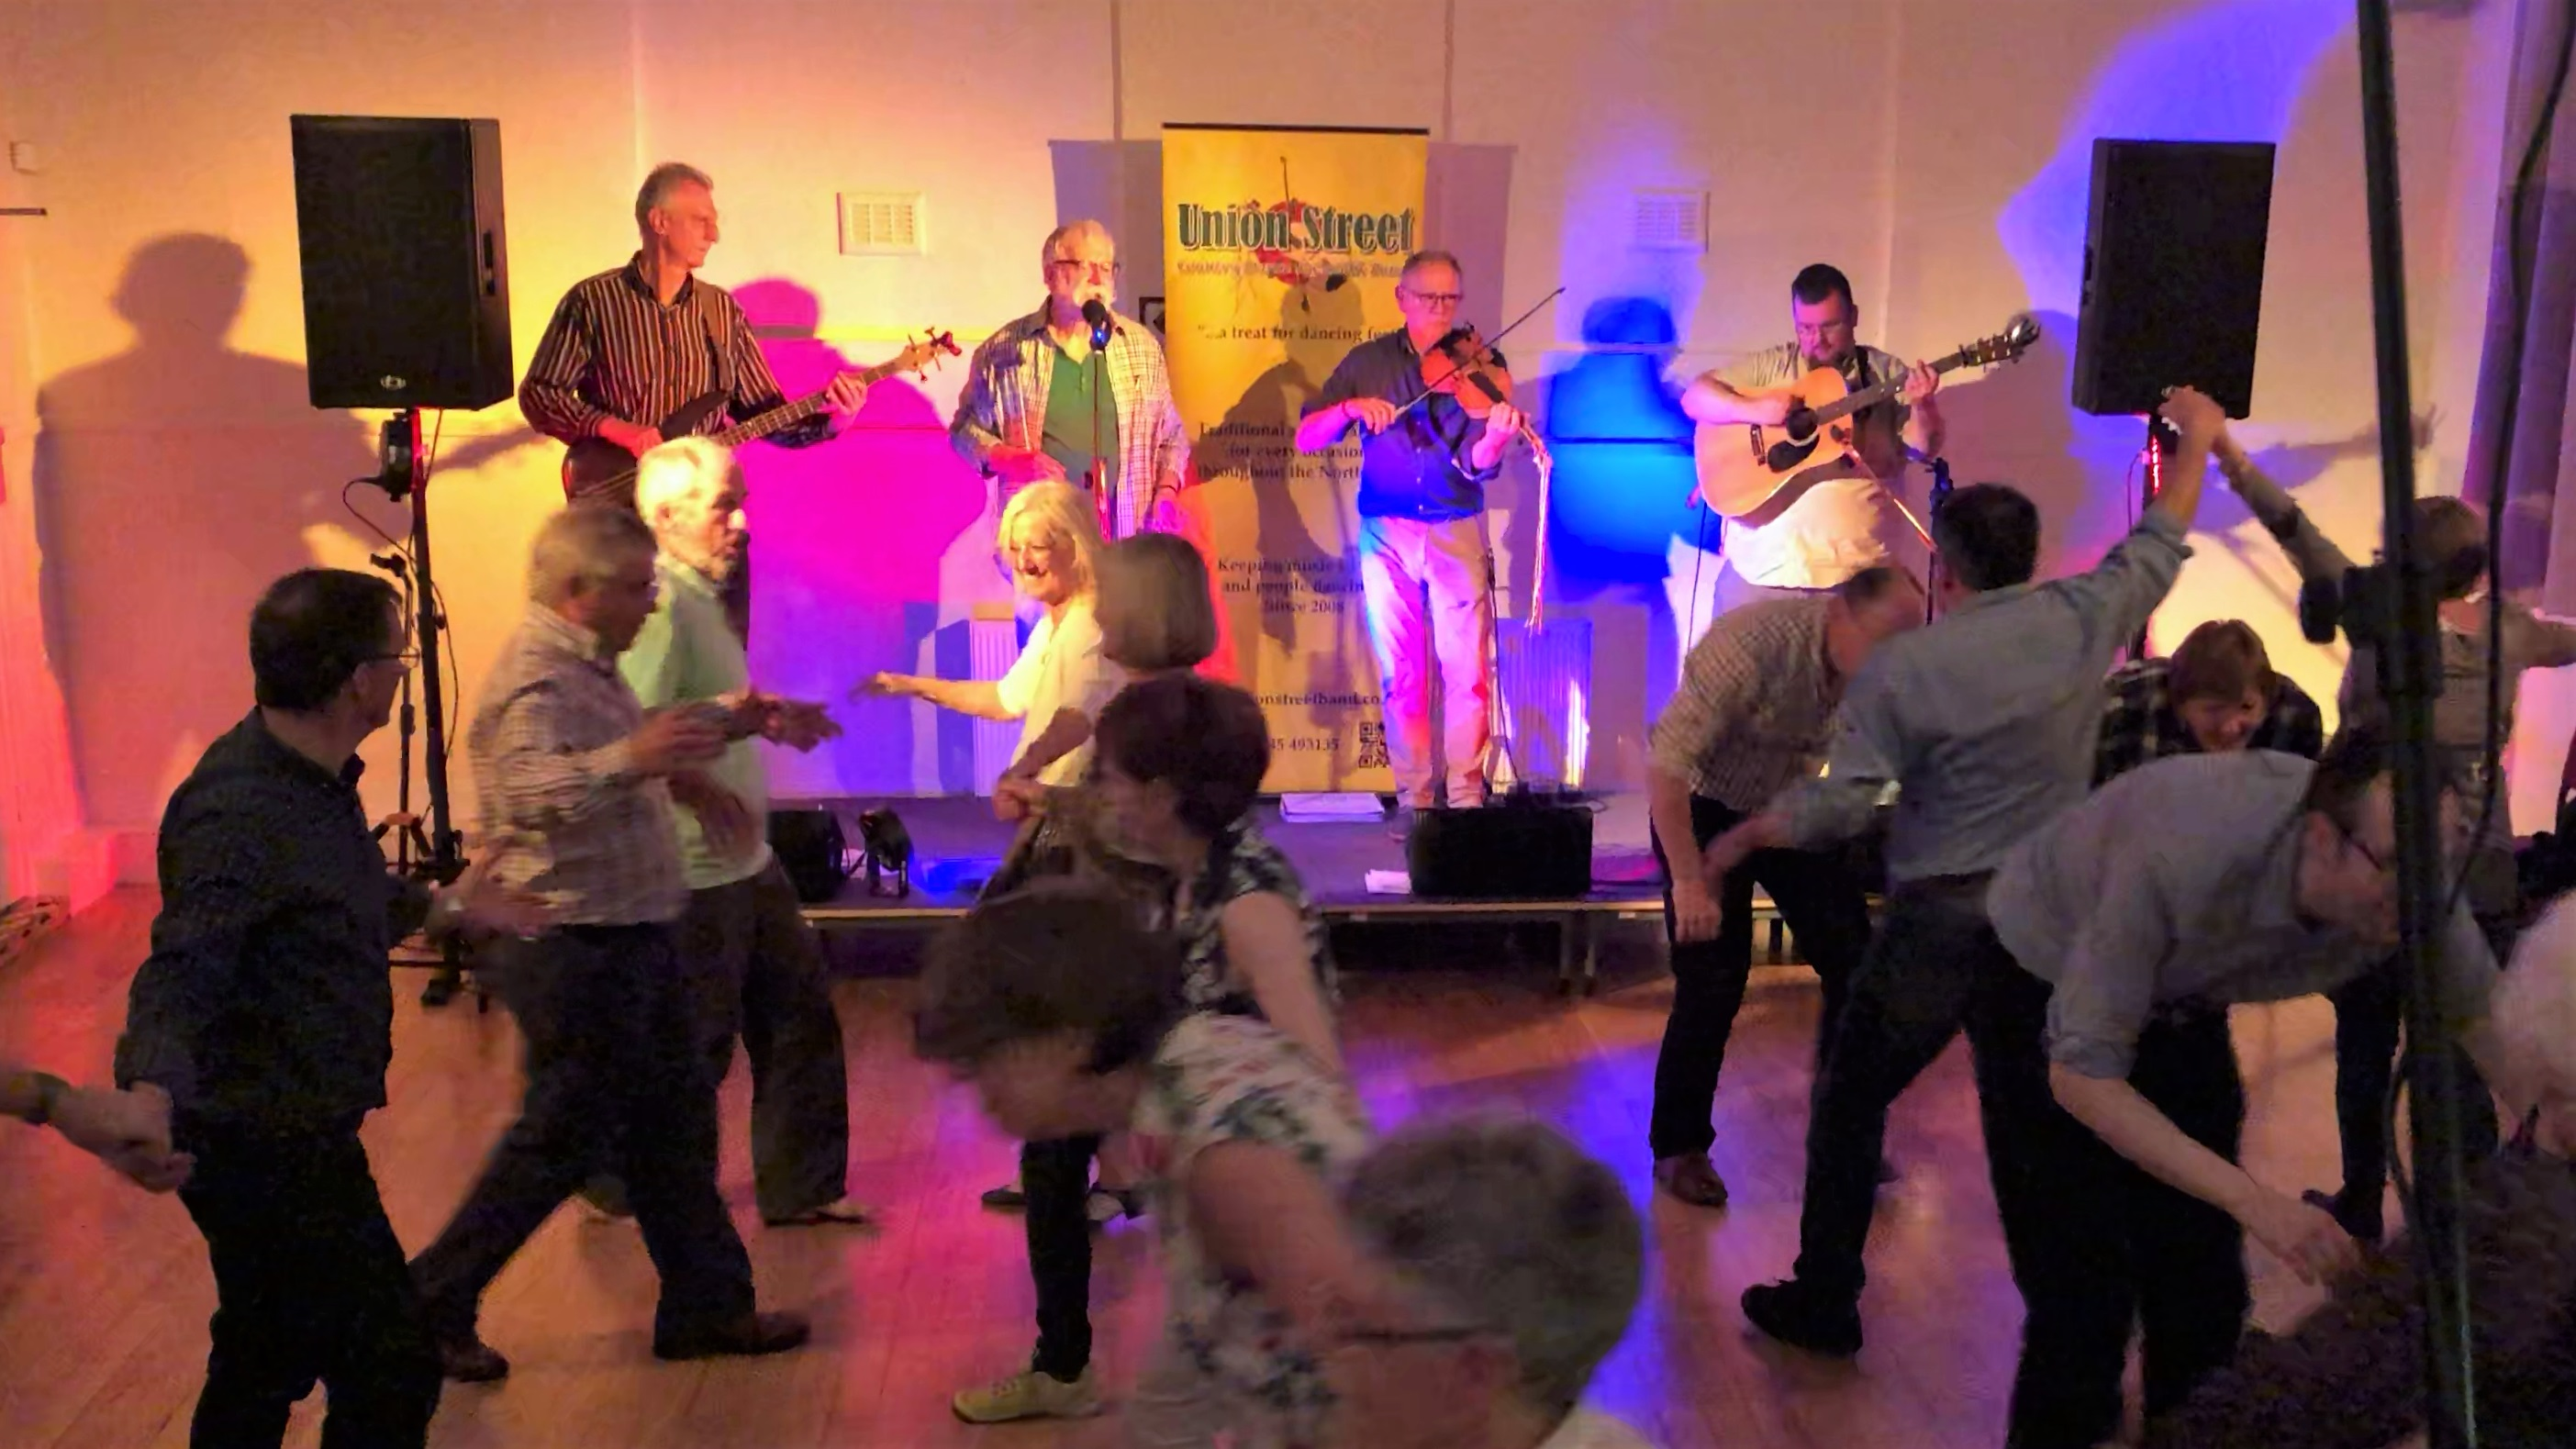 Union Street Ceilidh Band with Roger Downing - Mellor Brook Community Centre - 2018